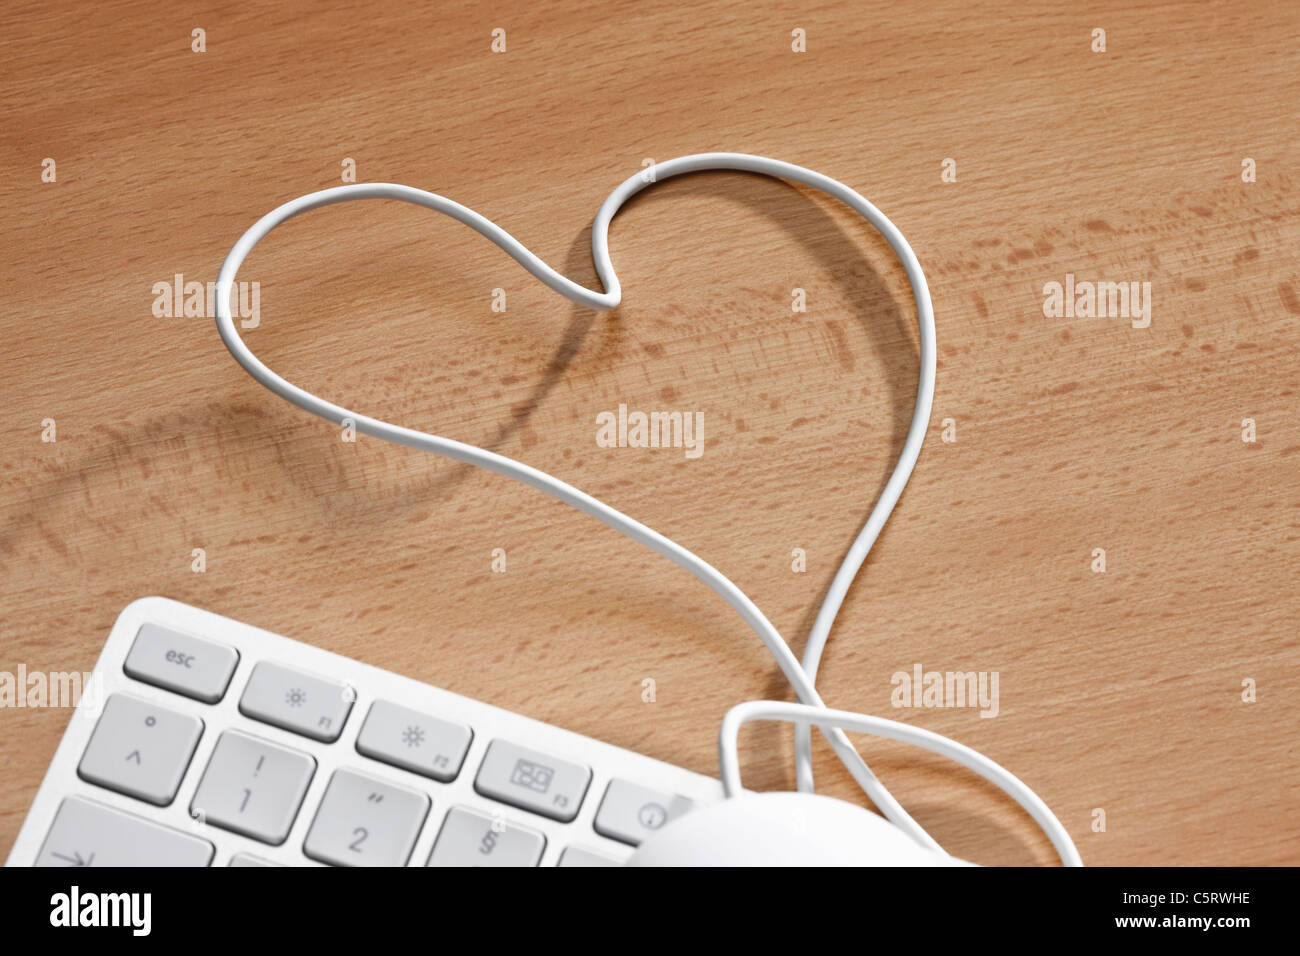 Computer keyboard with heart-shape wire, elevated view - Stock Image